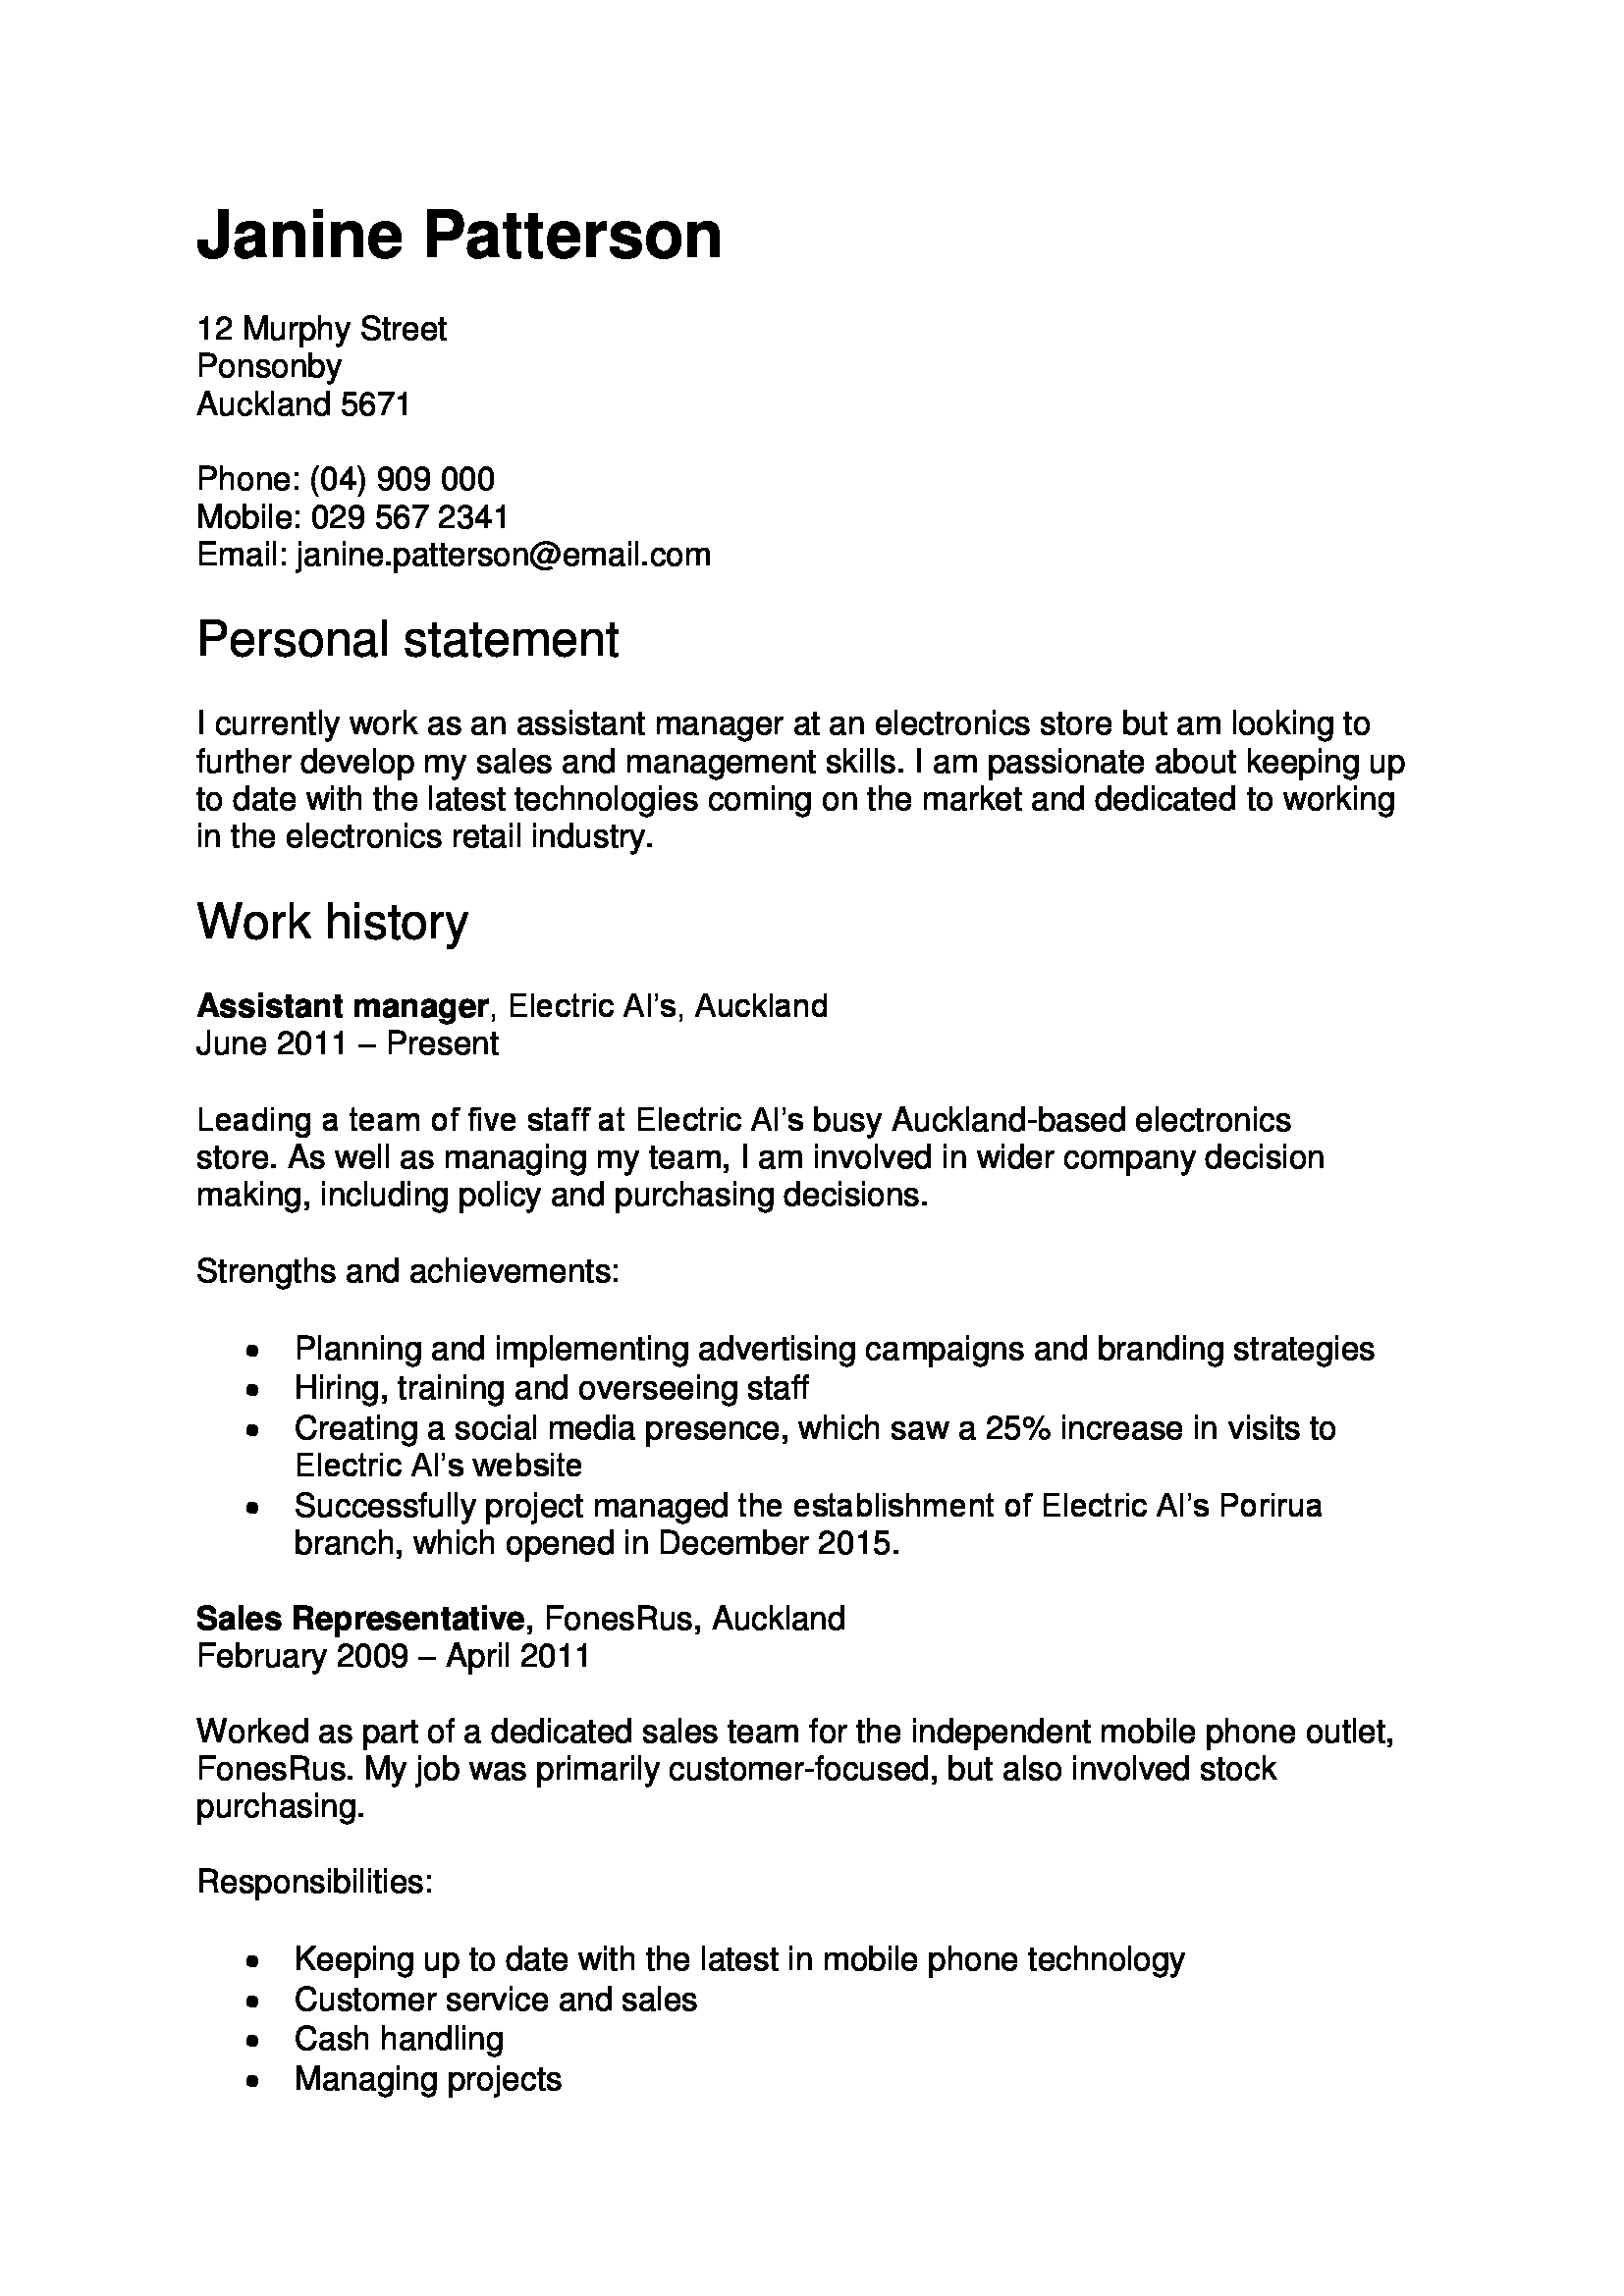 Job Application Letter Template Pdf - Cover Letter Example Executive assistant Careerperfect Standard